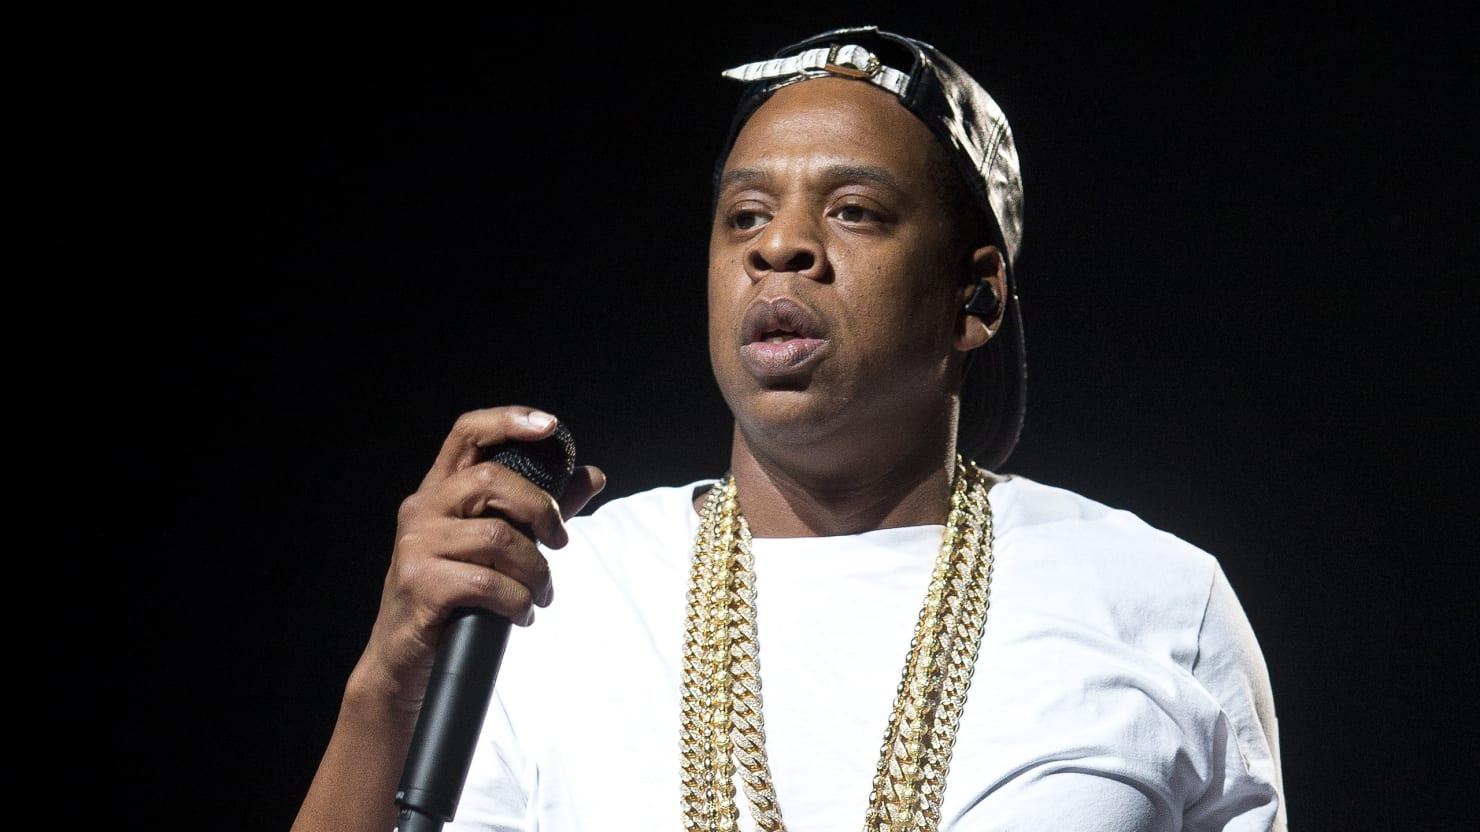 Jay Z Takes Lead Role in Barneys' Racial Profiling Council; Net-a-Porter Launches 'Hunger Games' Collection